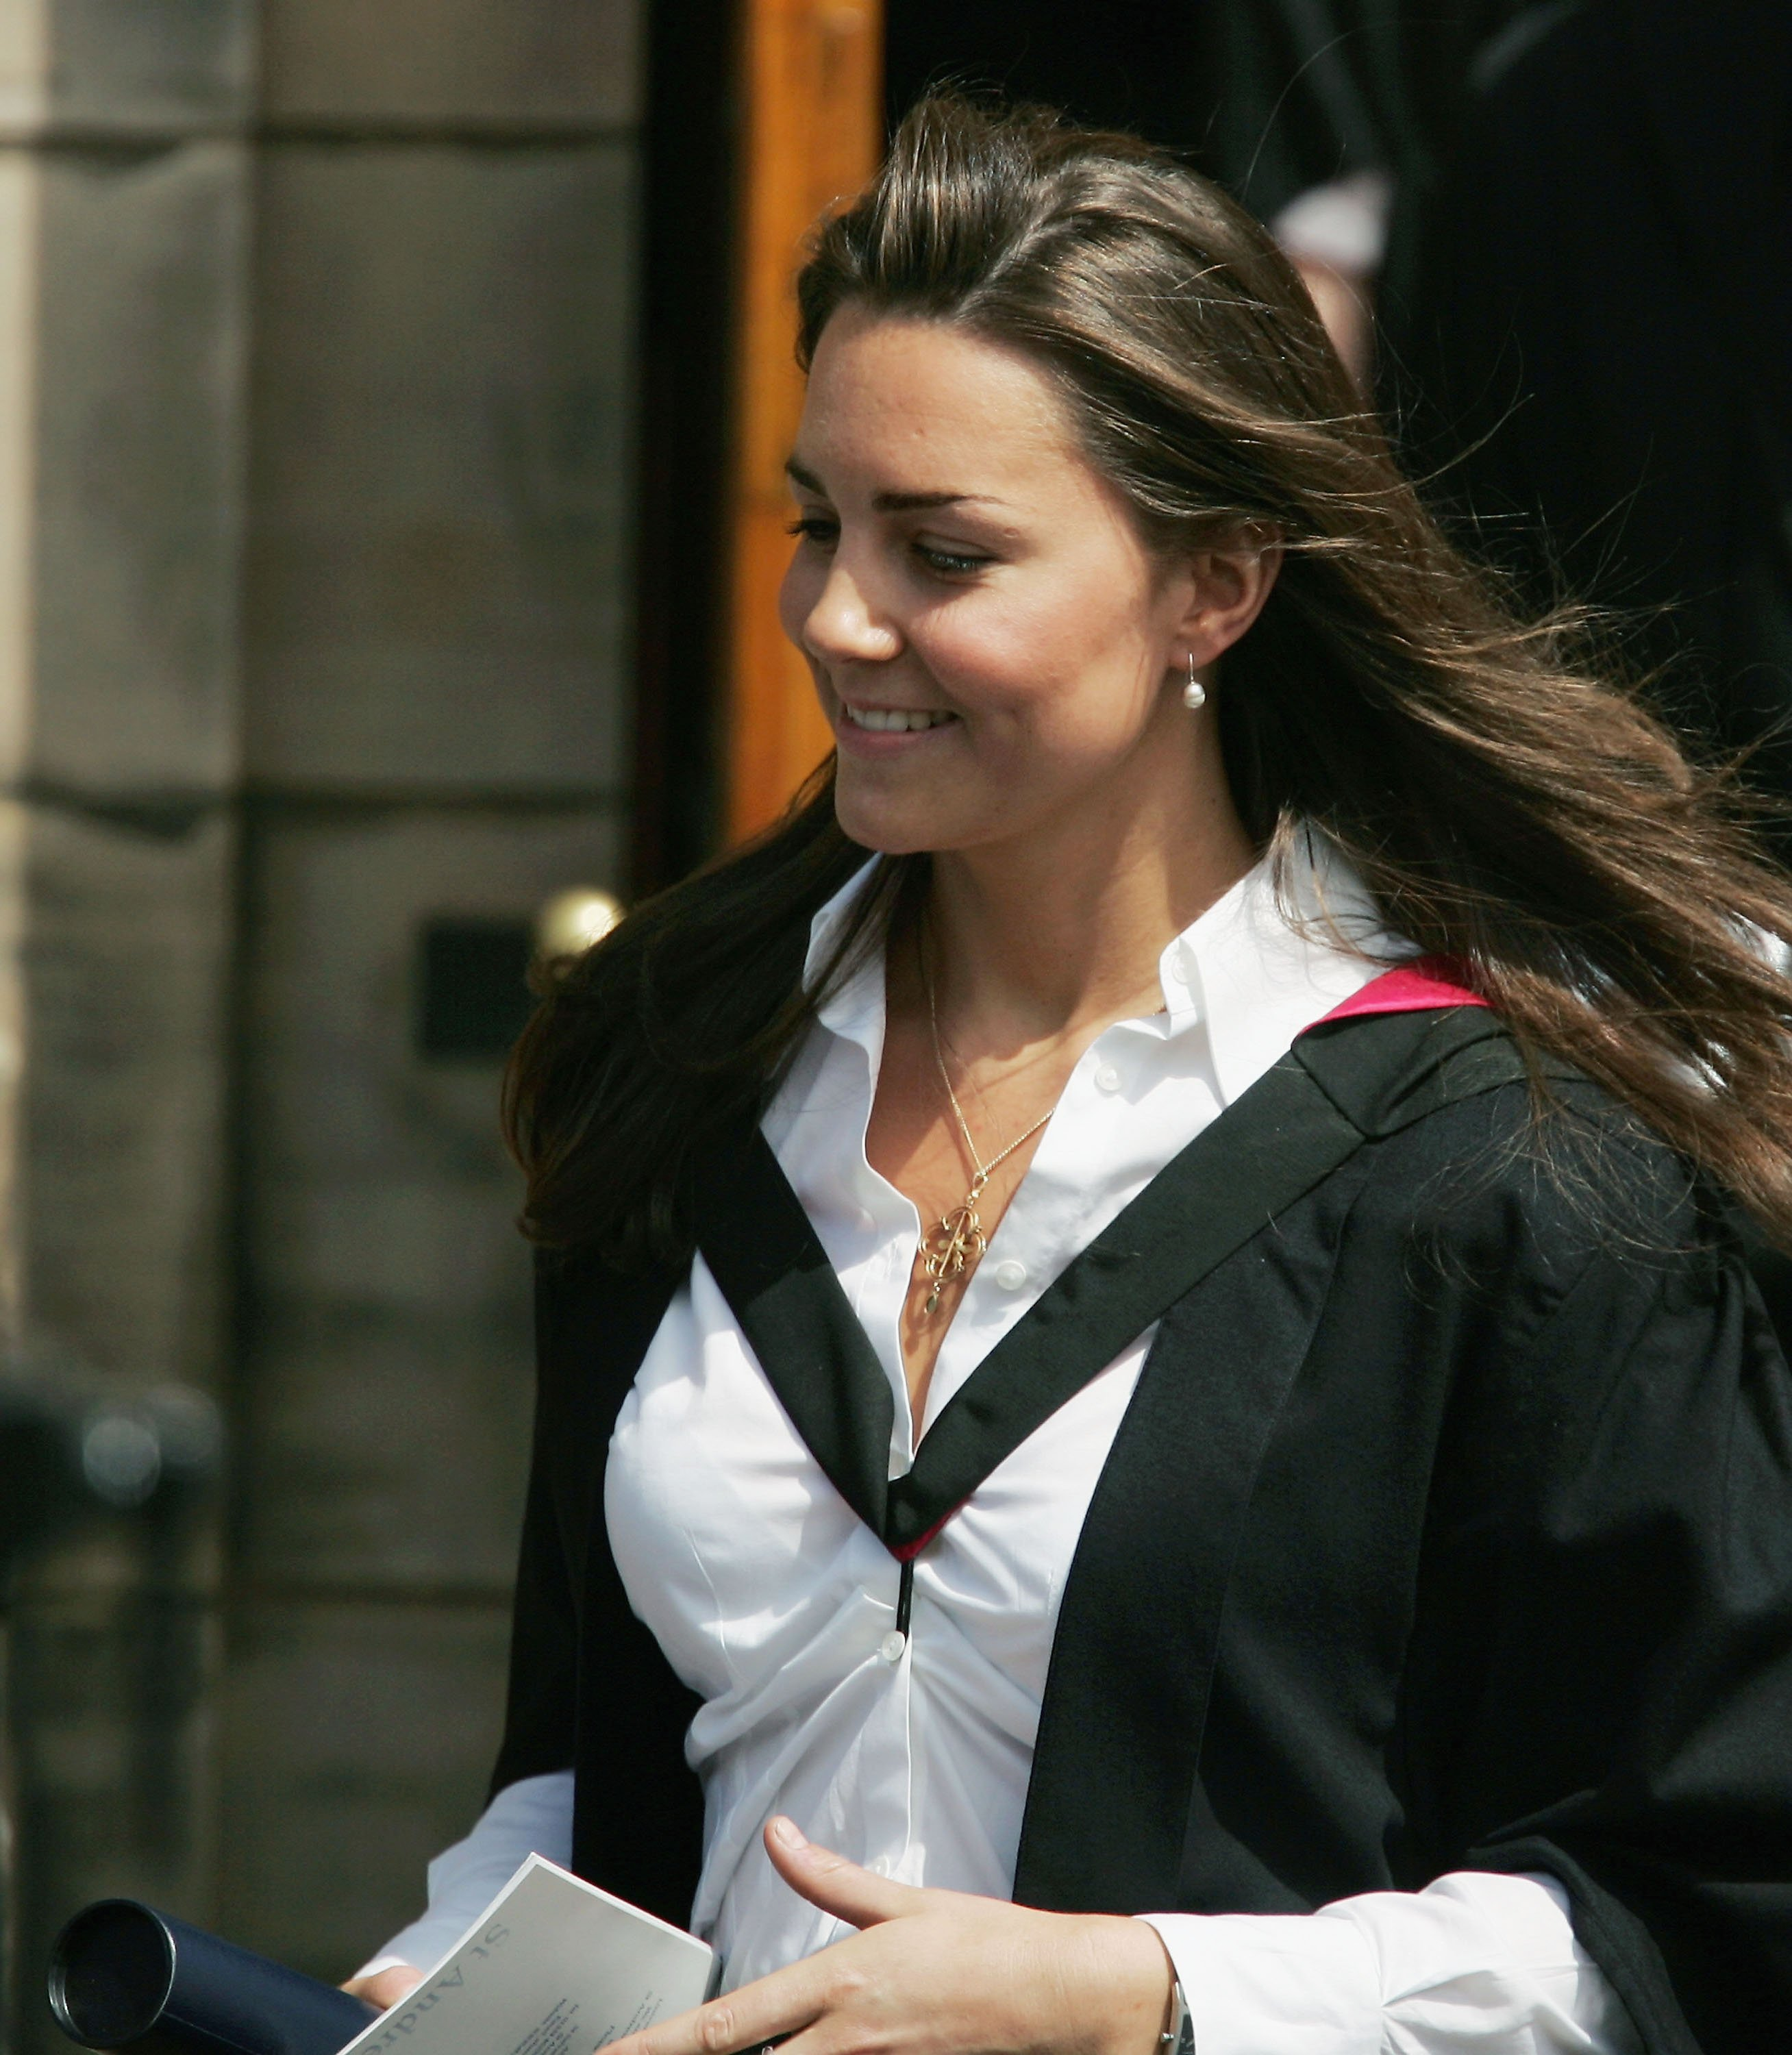 Kate Middleton at Younger Hall after her graduation ceremony, June 23, 2005 in St Andrews, Scotland. | Source: Getty Images